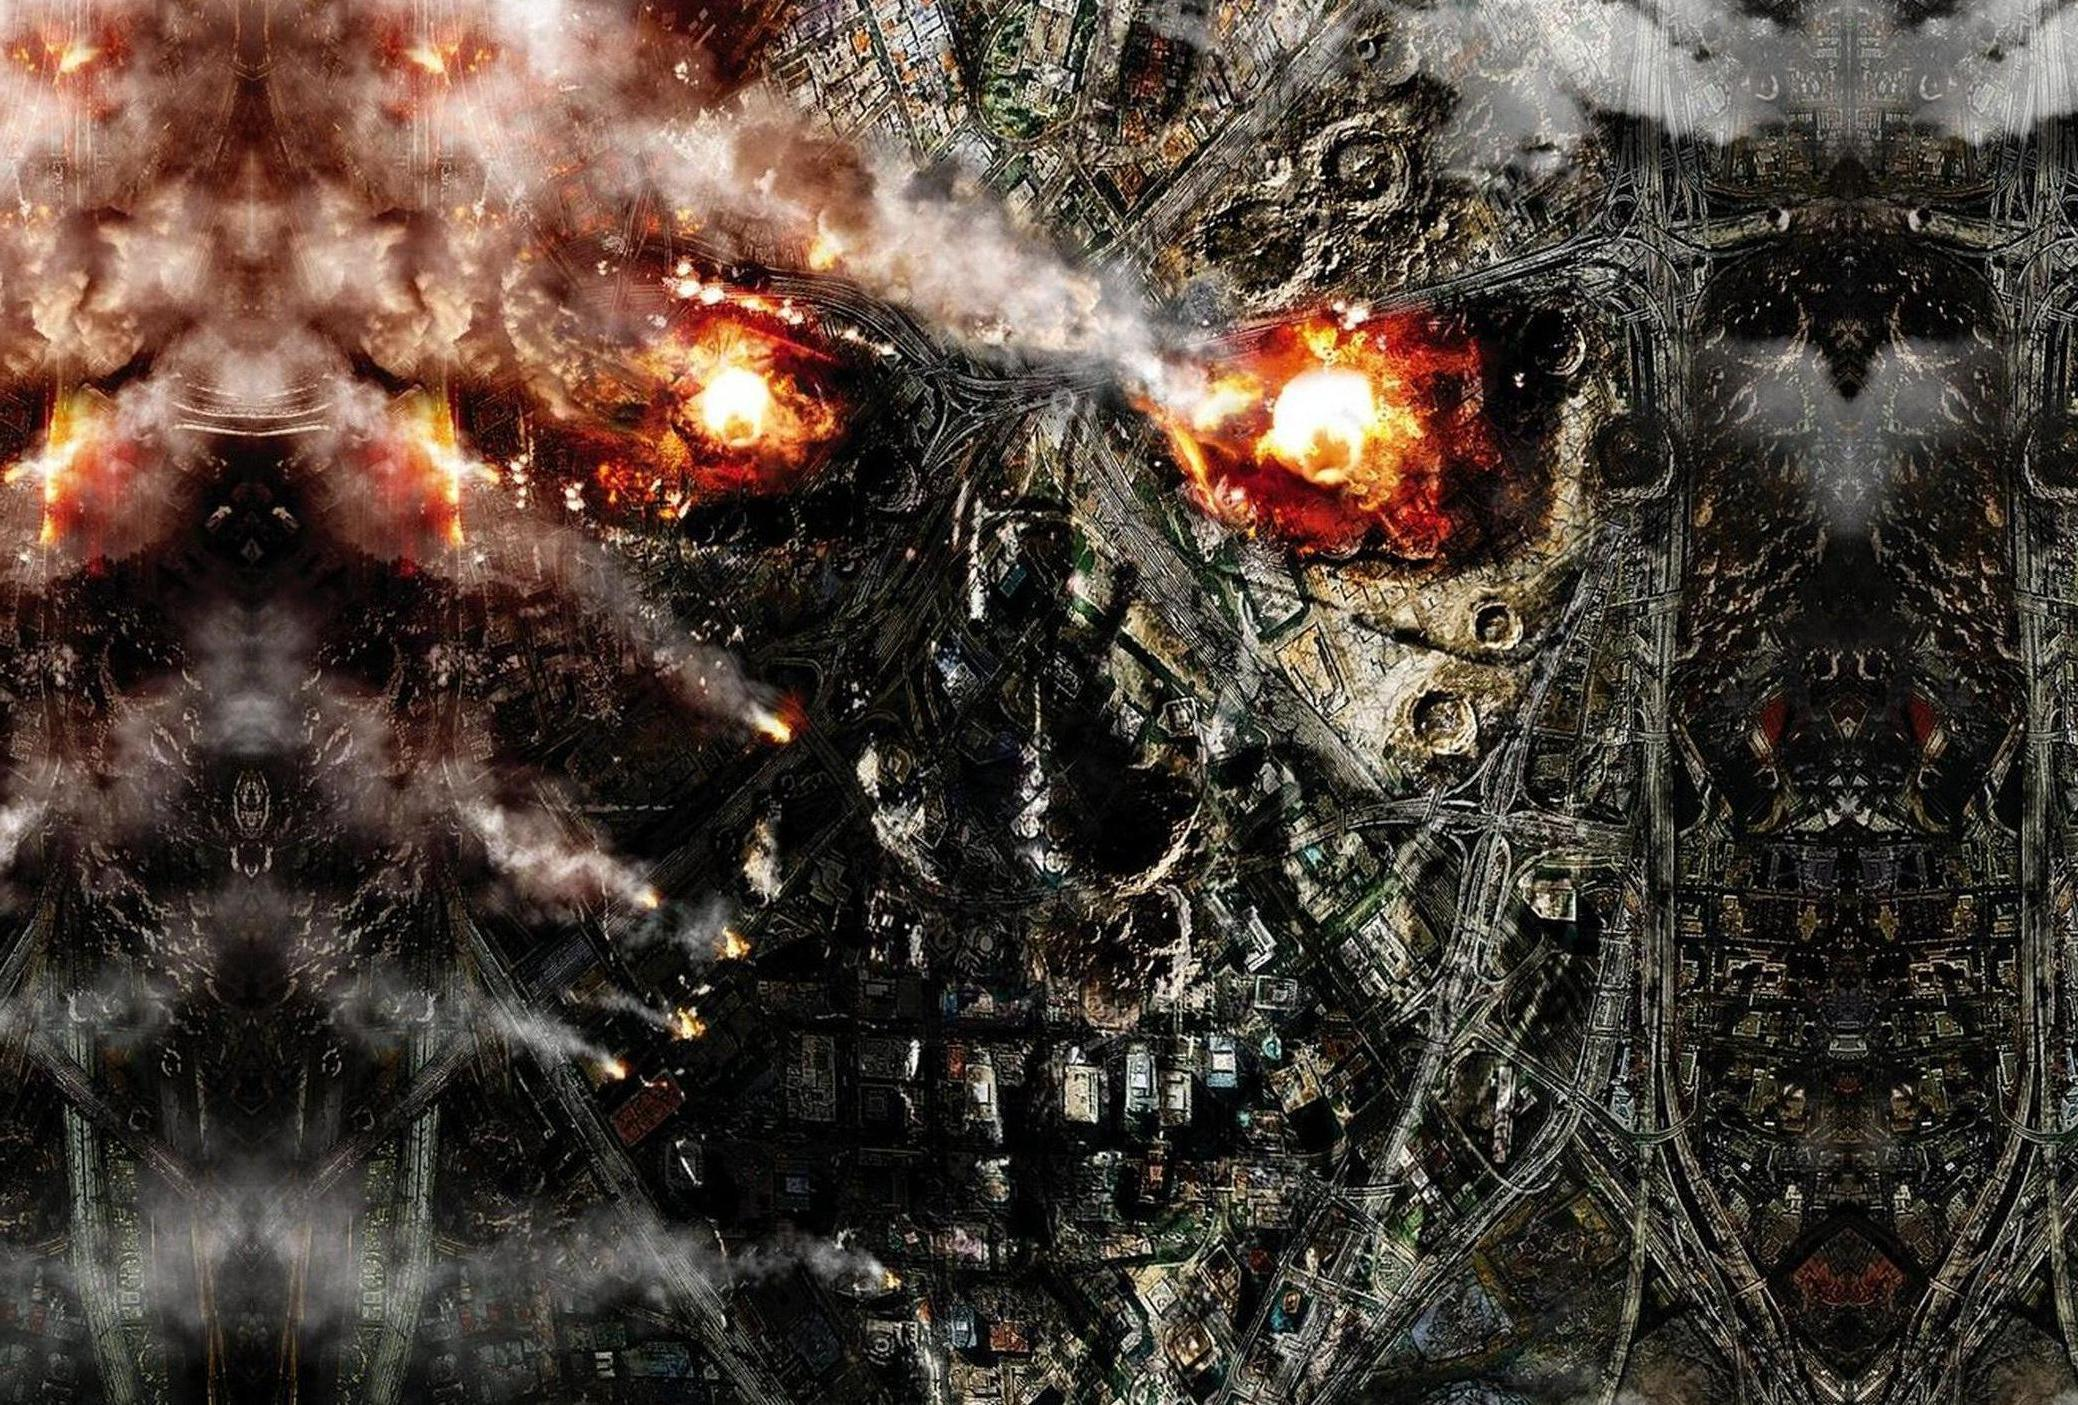 terminator salvation wallpaper hd - photo #15